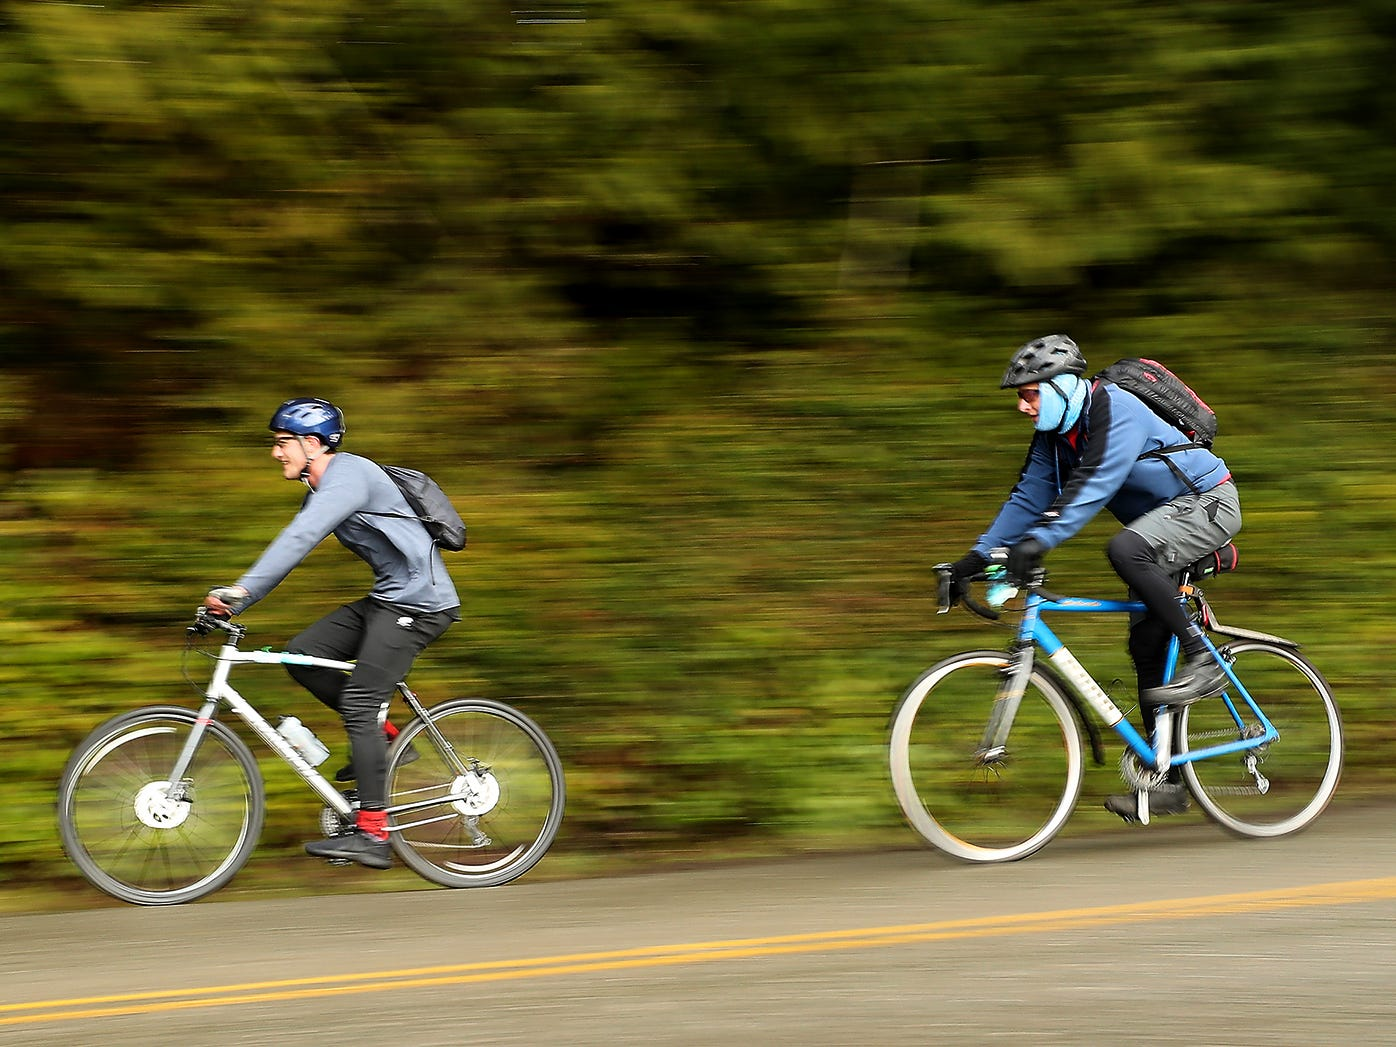 Cyclists speed around the corner of Arrow Point Drive NW during Cascade Bicycle Club's annual Chilly Hilly ride around Bainbridge Island on Sunday, February 24, 2019.